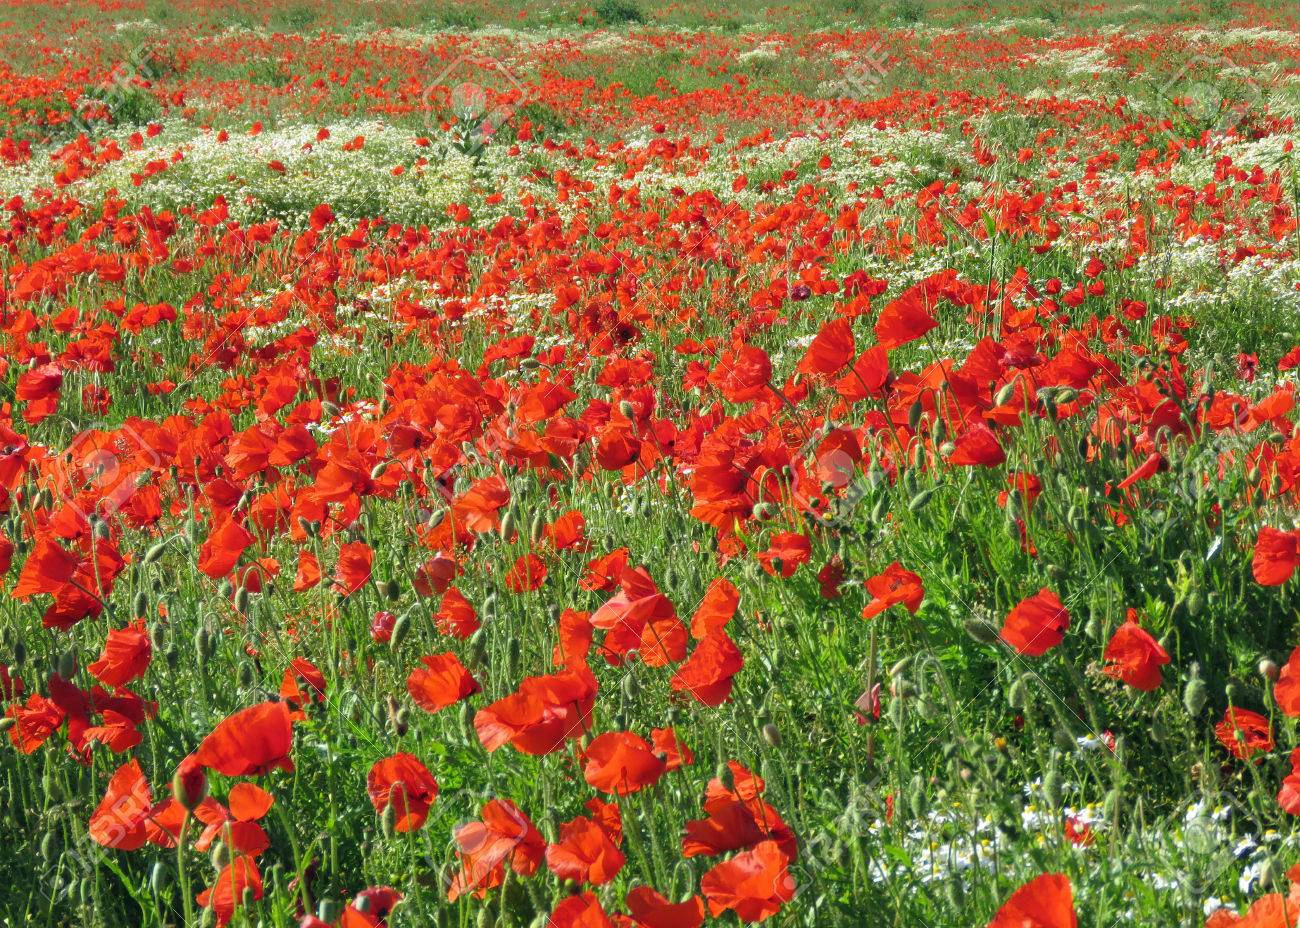 A meadow full of poppies and grasses in rural English countryside Standard-Bild - 81777938